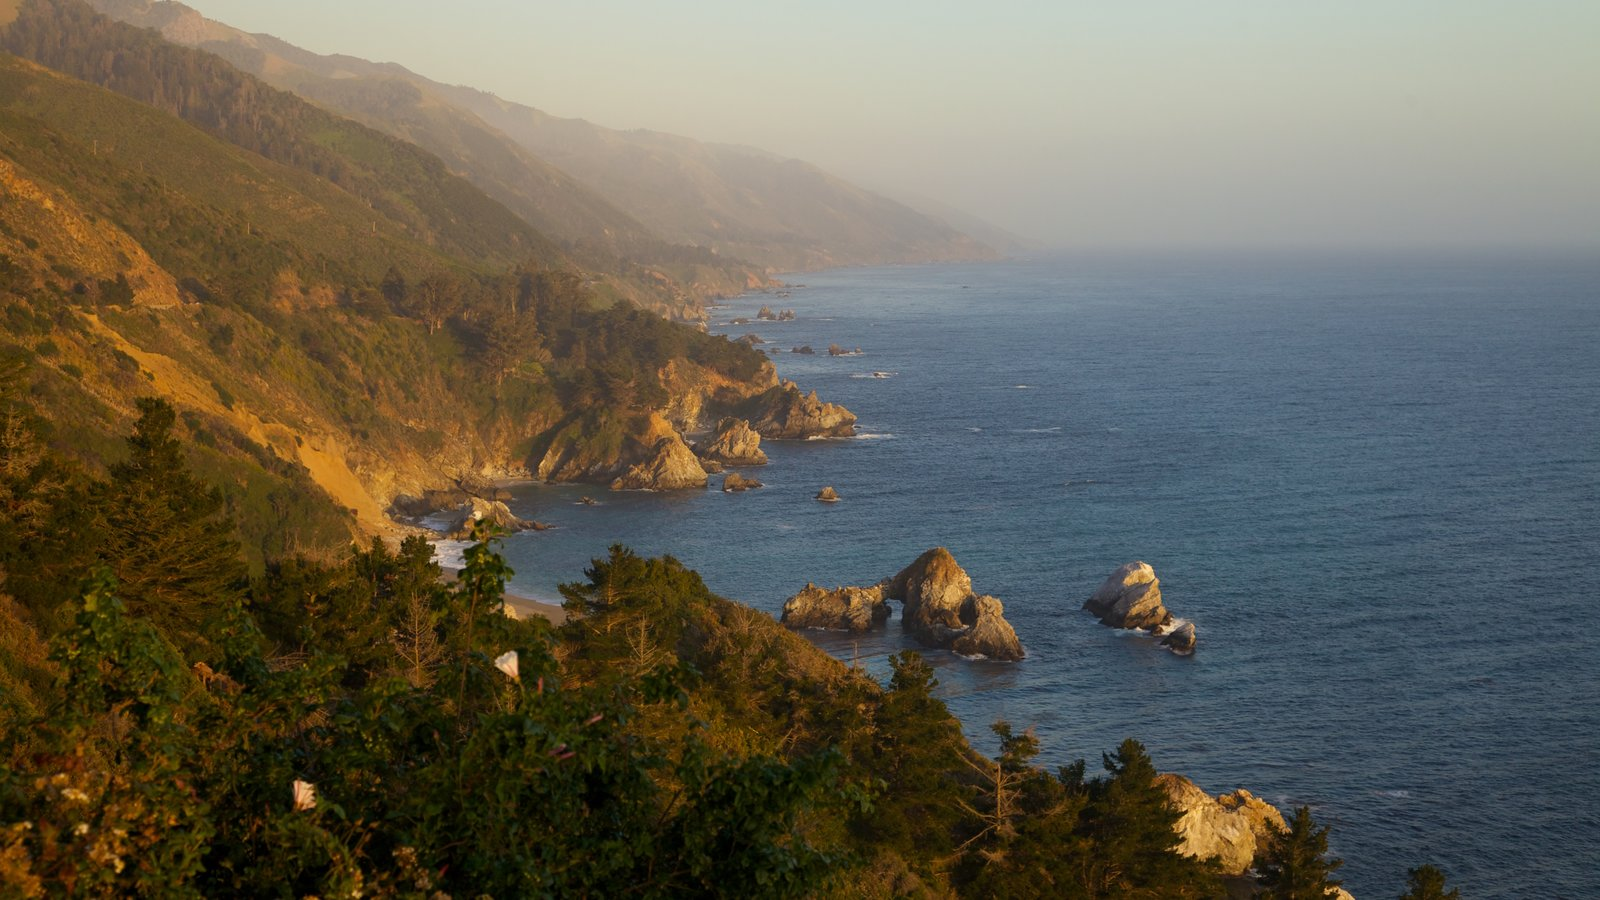 Pfeiffer Big Sur State Park featuring landscape views and rocky coastline